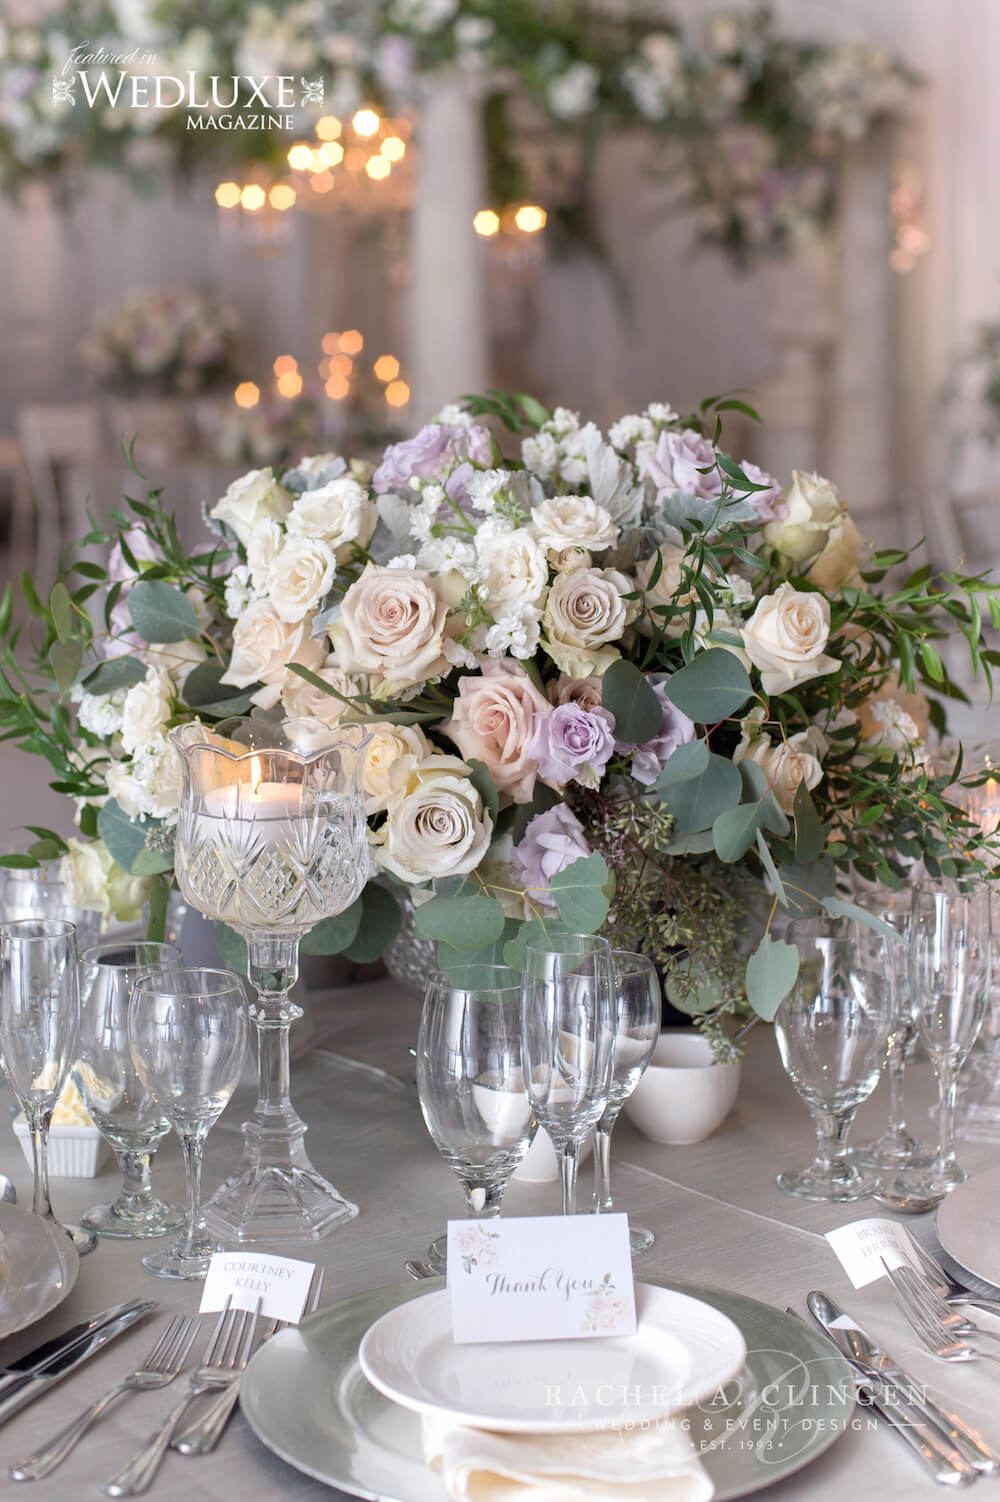 wedding-centrepiece-flowers-toronto-rachel-a-clingen